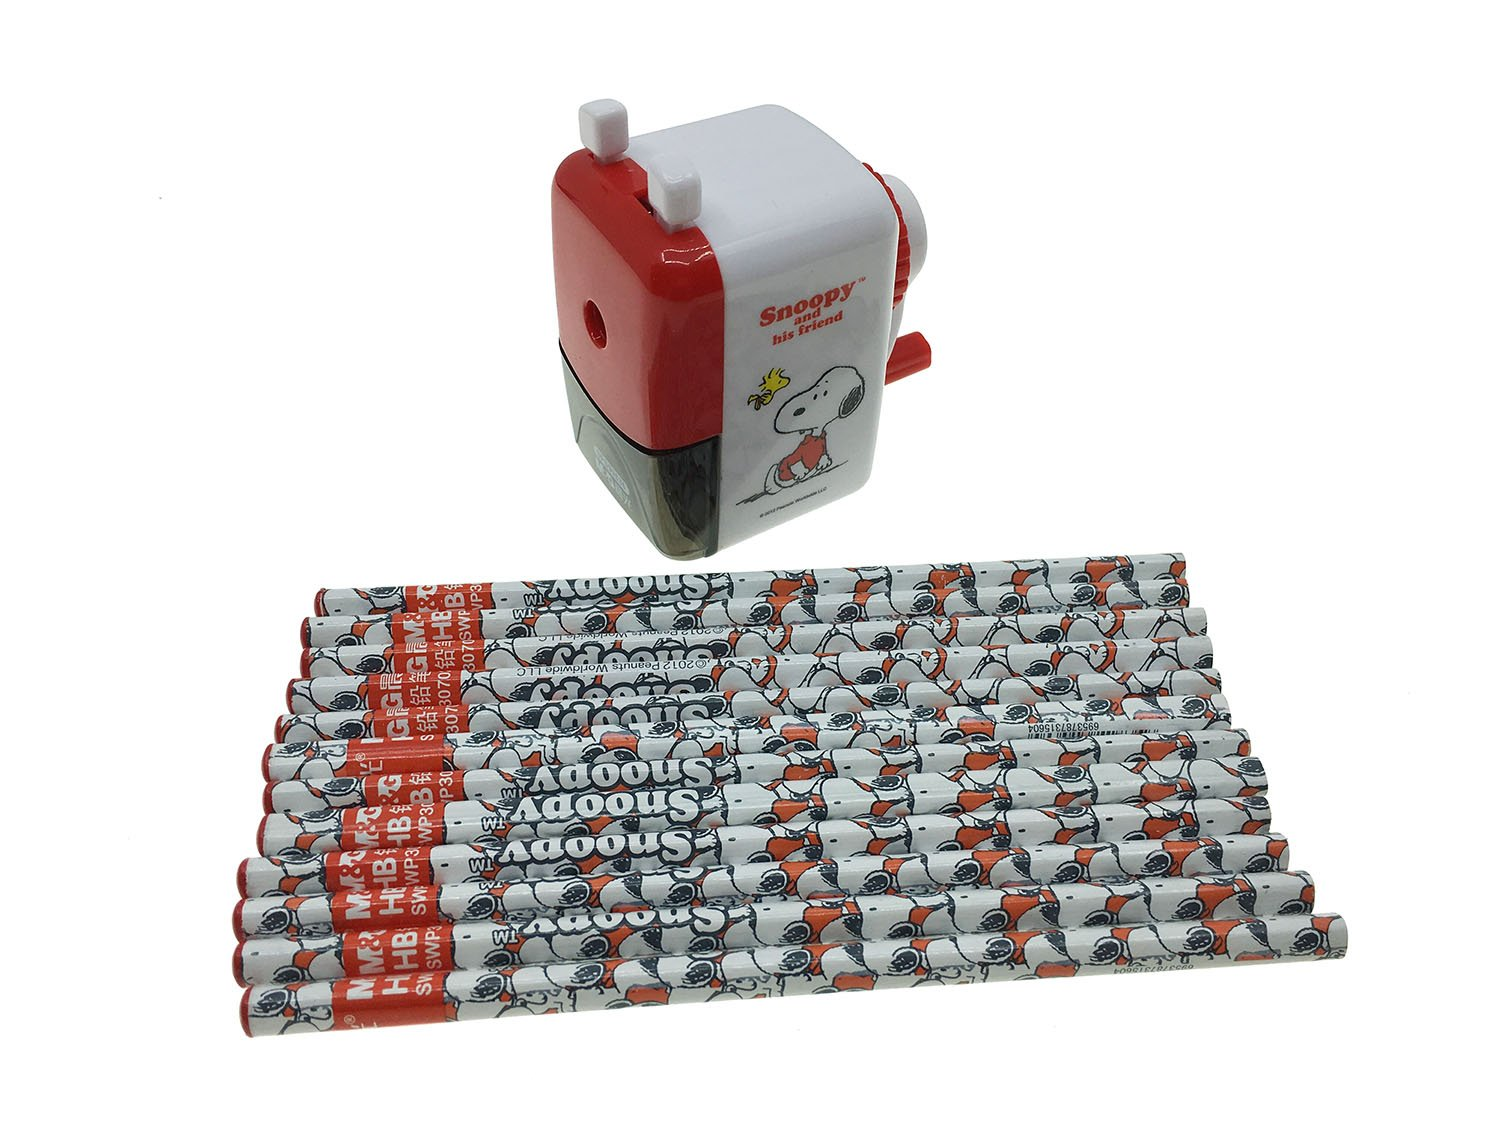 Snoopy Peanuts Character Pencil Sharpener and 12 pencil Student Office Stationery-Compact & Quiet Classroom Sharpener